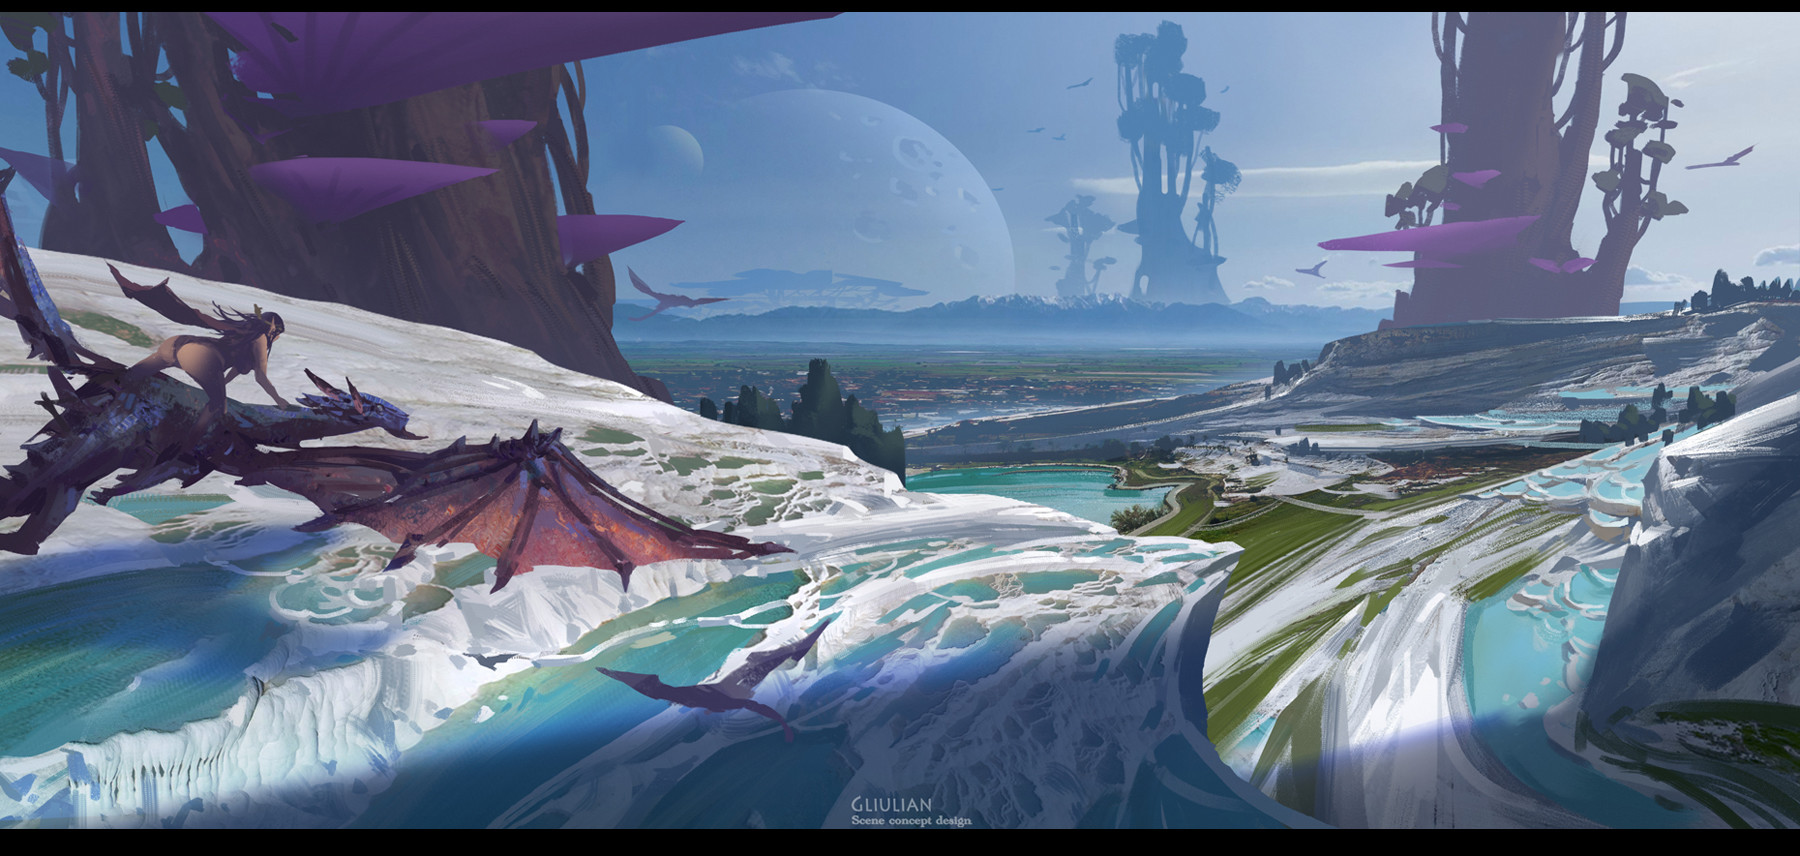 G Liulian digital painting concept art dragon planet sea